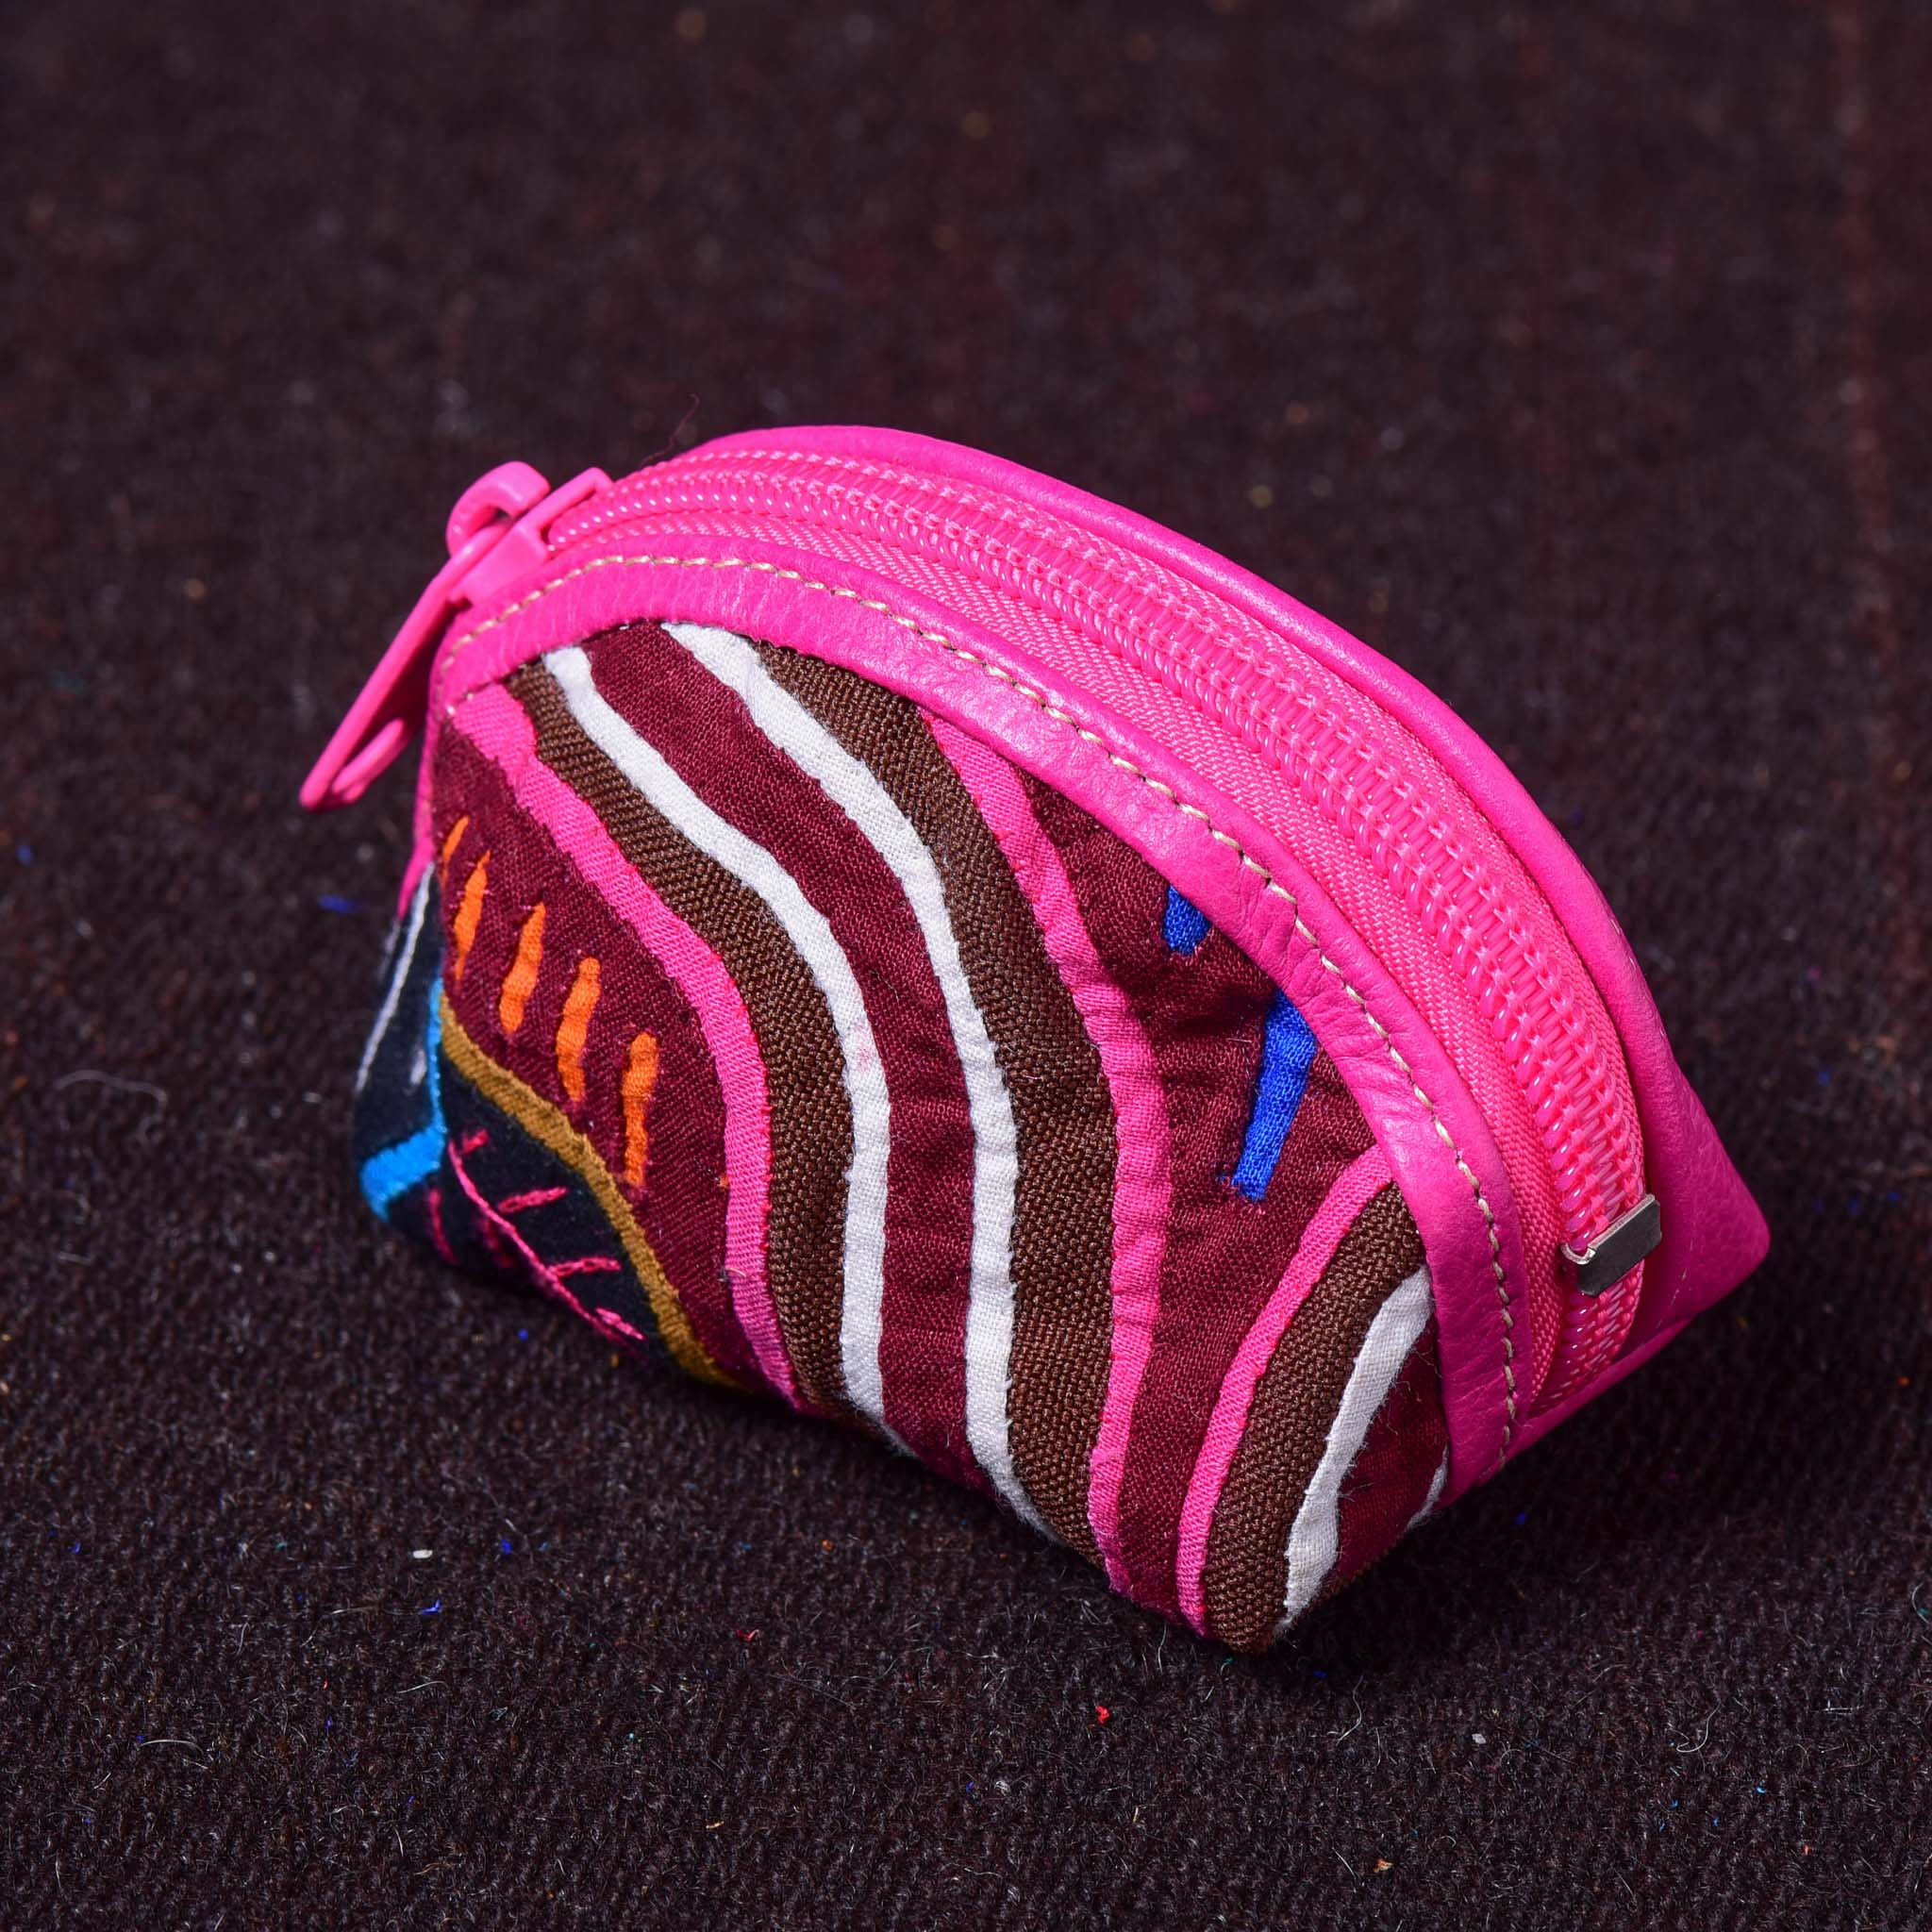 Redondo - Kuna Mola & Leather Purse pink